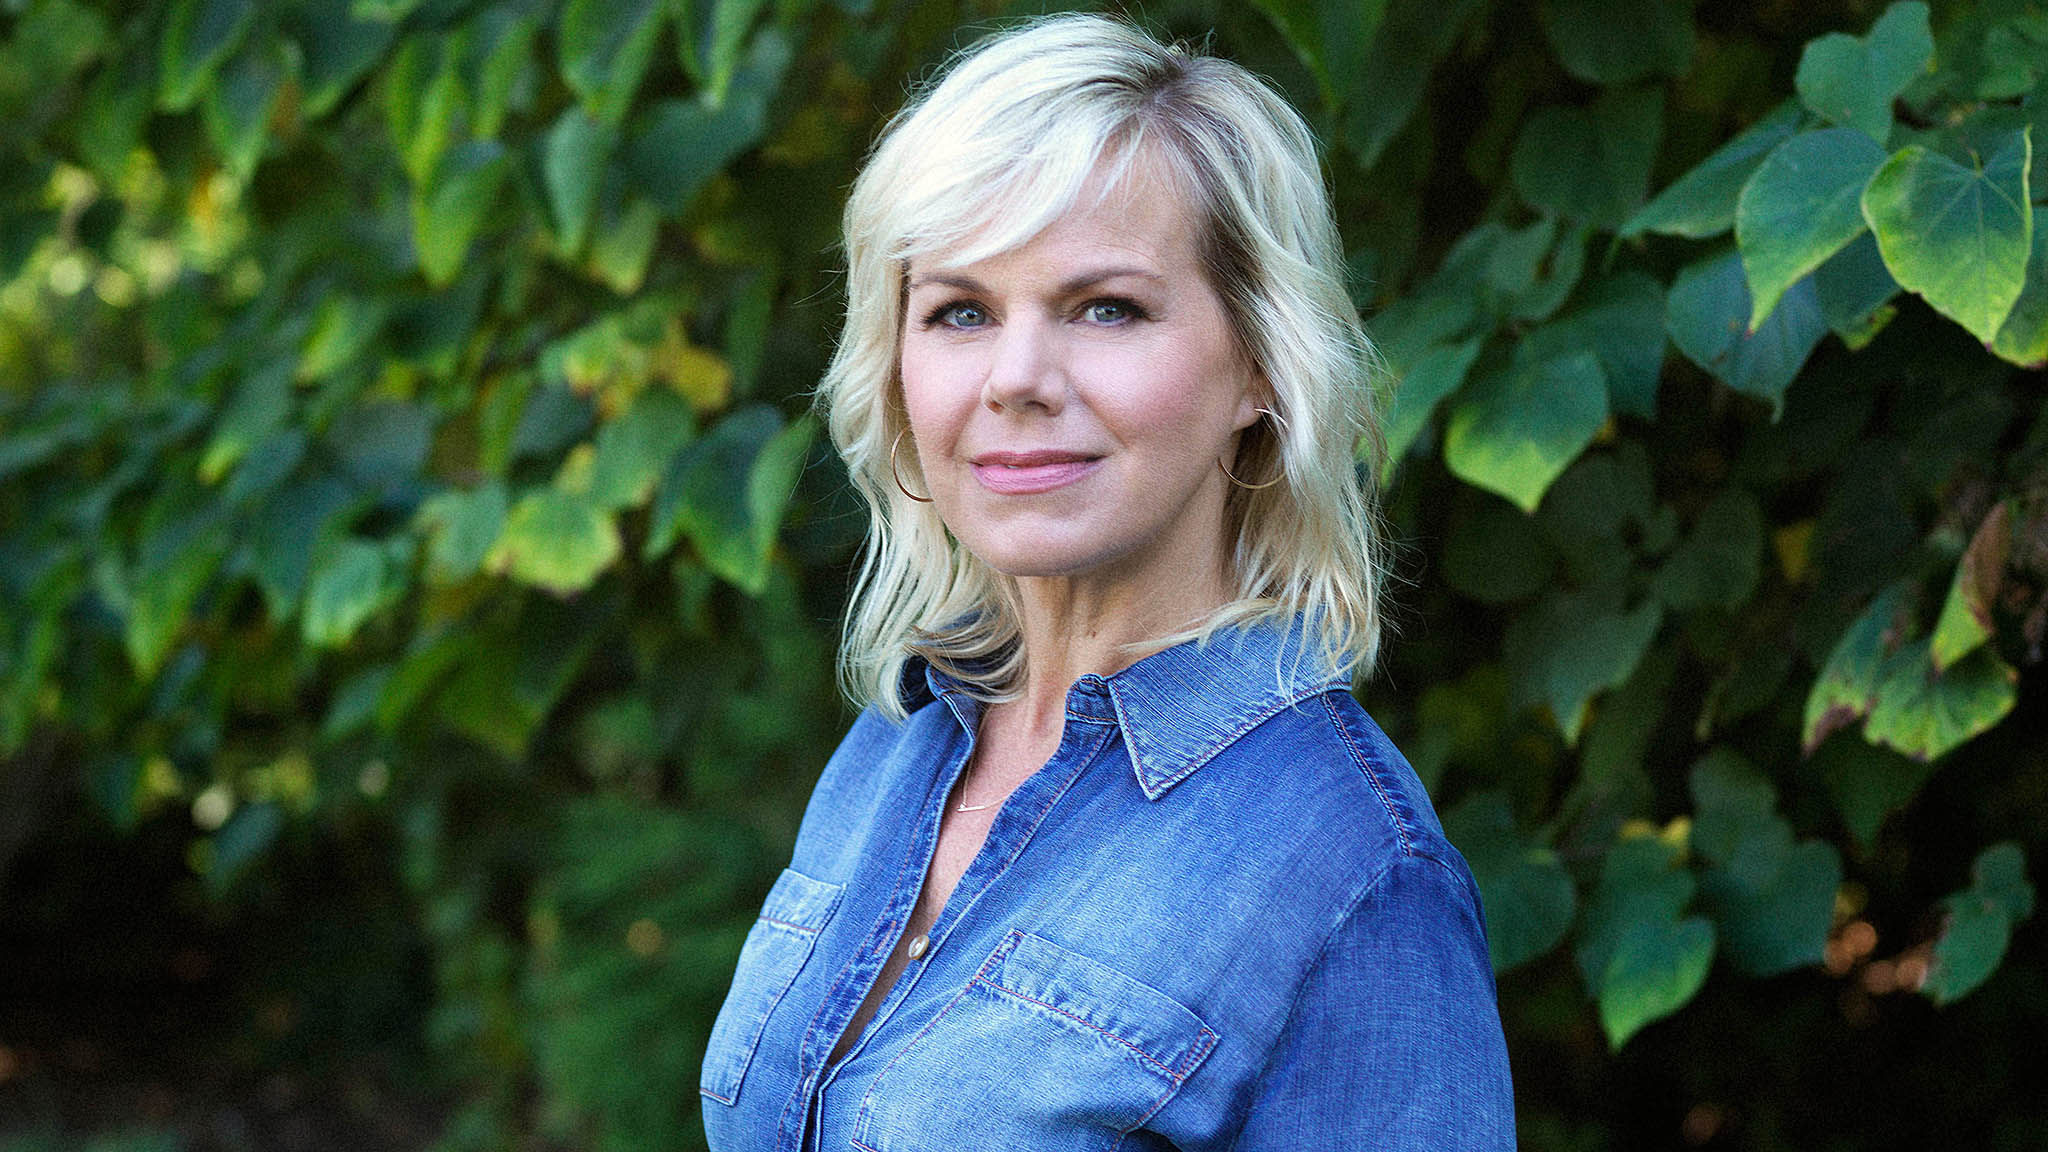 Gretchen Carlson is on a mission to end culture of secret deals